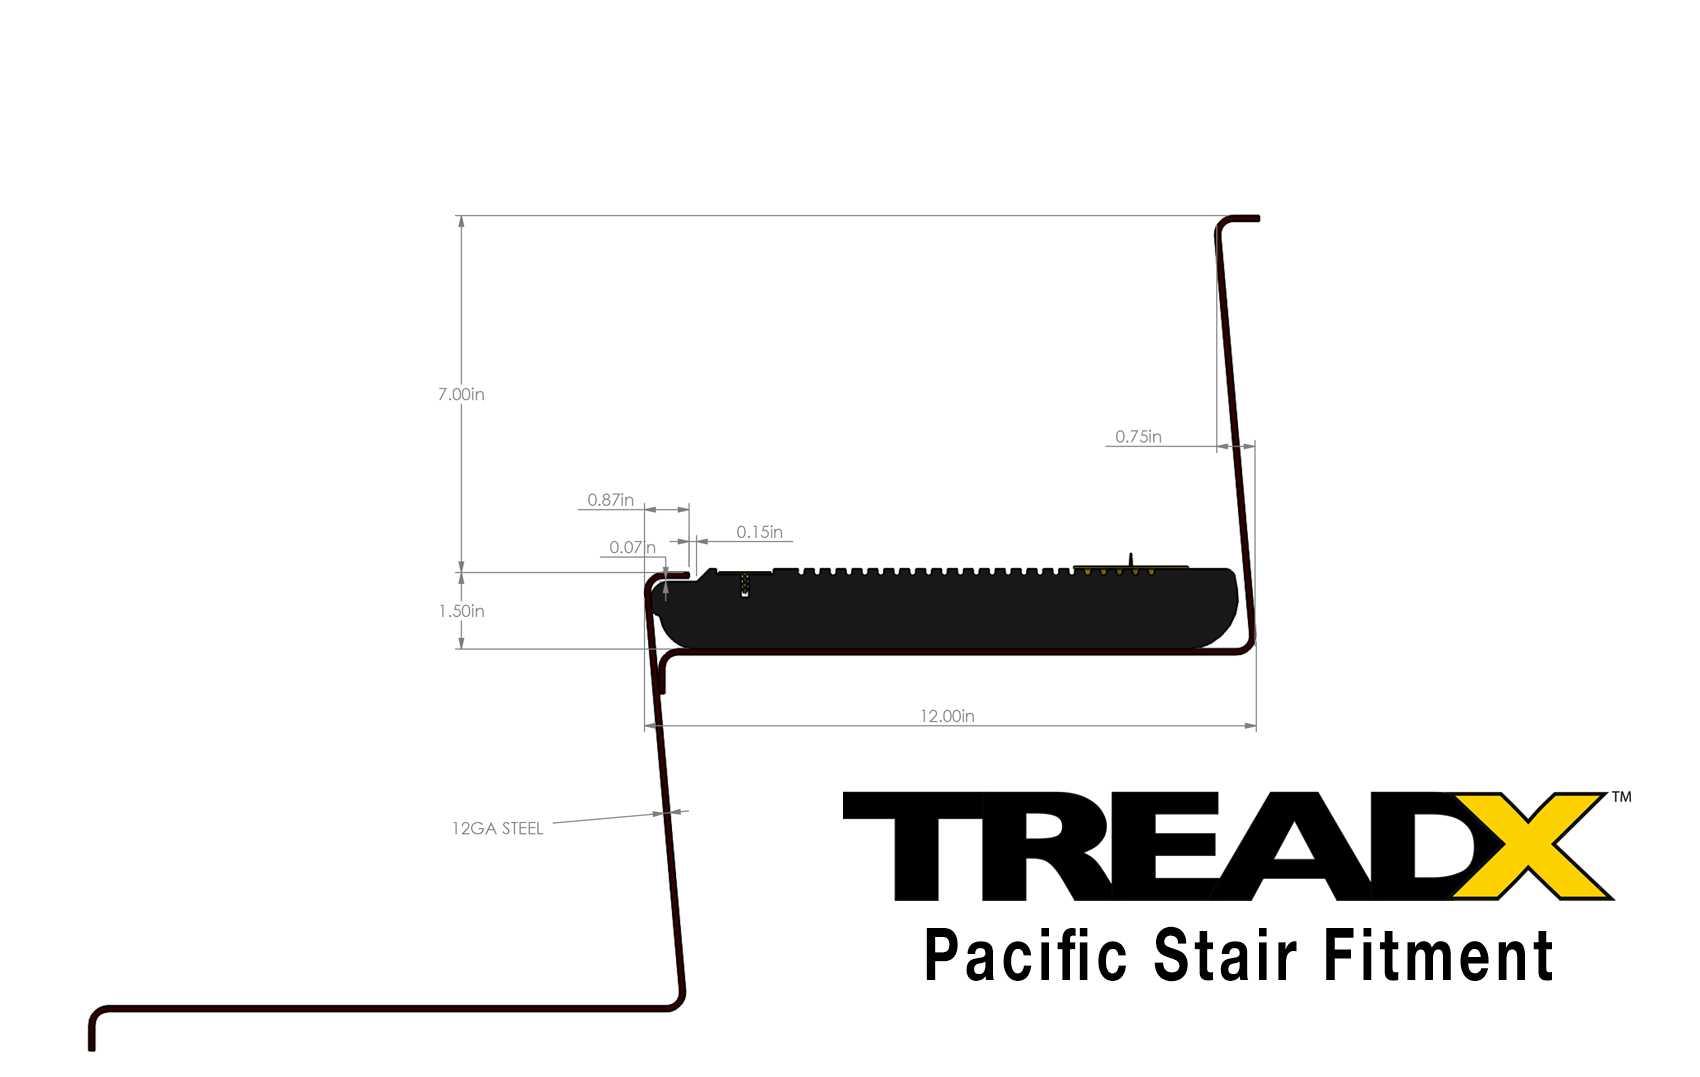 Pacific Stair - 1.5 Fitment Image.jpg